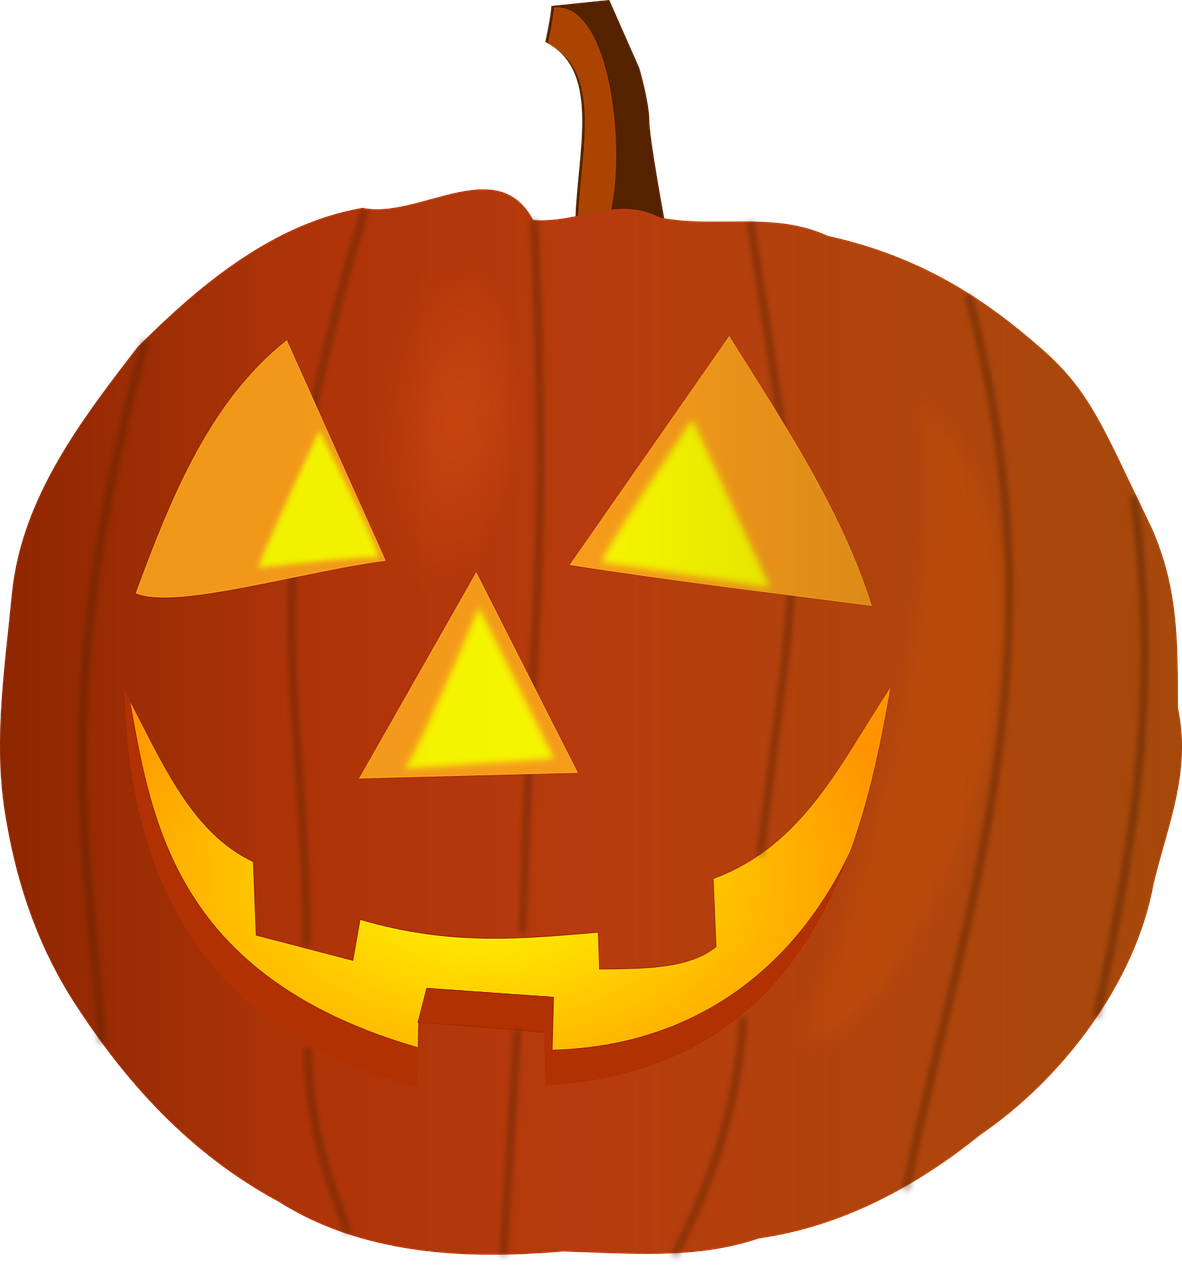 Carved pumpkin clipart png black and white library Jack-o'-lantern Pumpkin Halloween Carving Clip art - pumpkin clipart ... black and white library